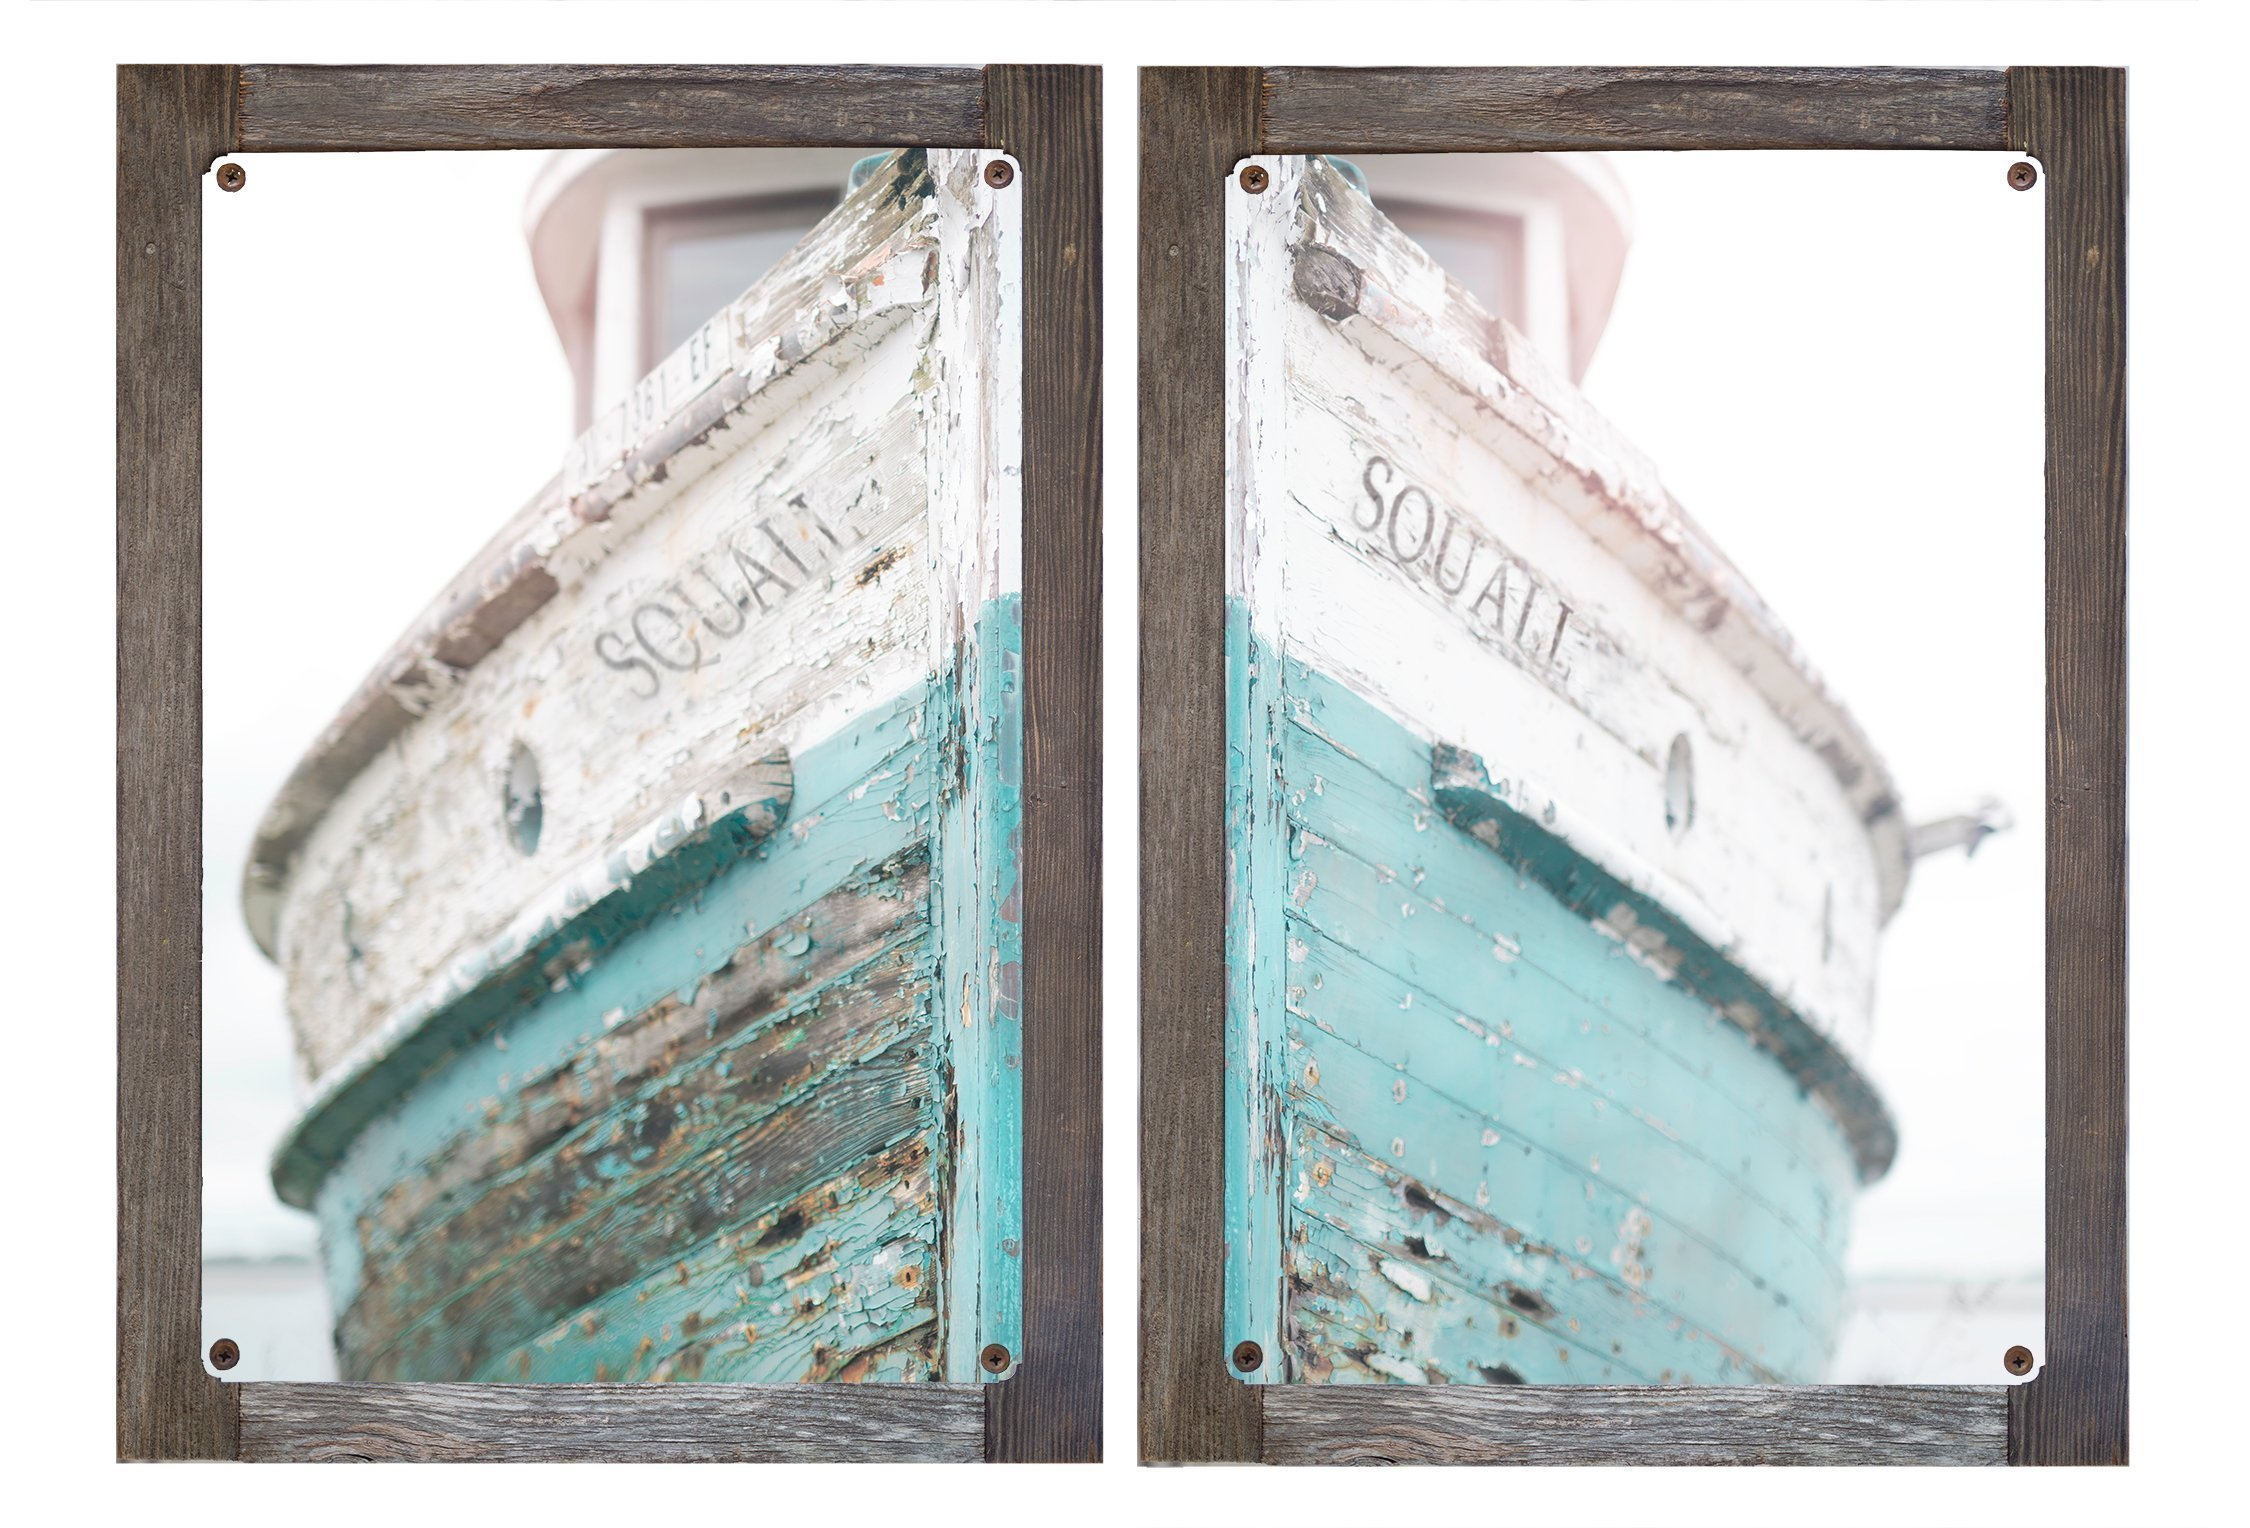 Barnwood Framed Metal Print Diptych- Nautical Ship, Vintage Beachy, Beach Print, Cottage Decor, Sea, Rustic Wall Art, Teal Fixer Upper, Bathroom, 16'' w x 24'' Print by Photo Artistry